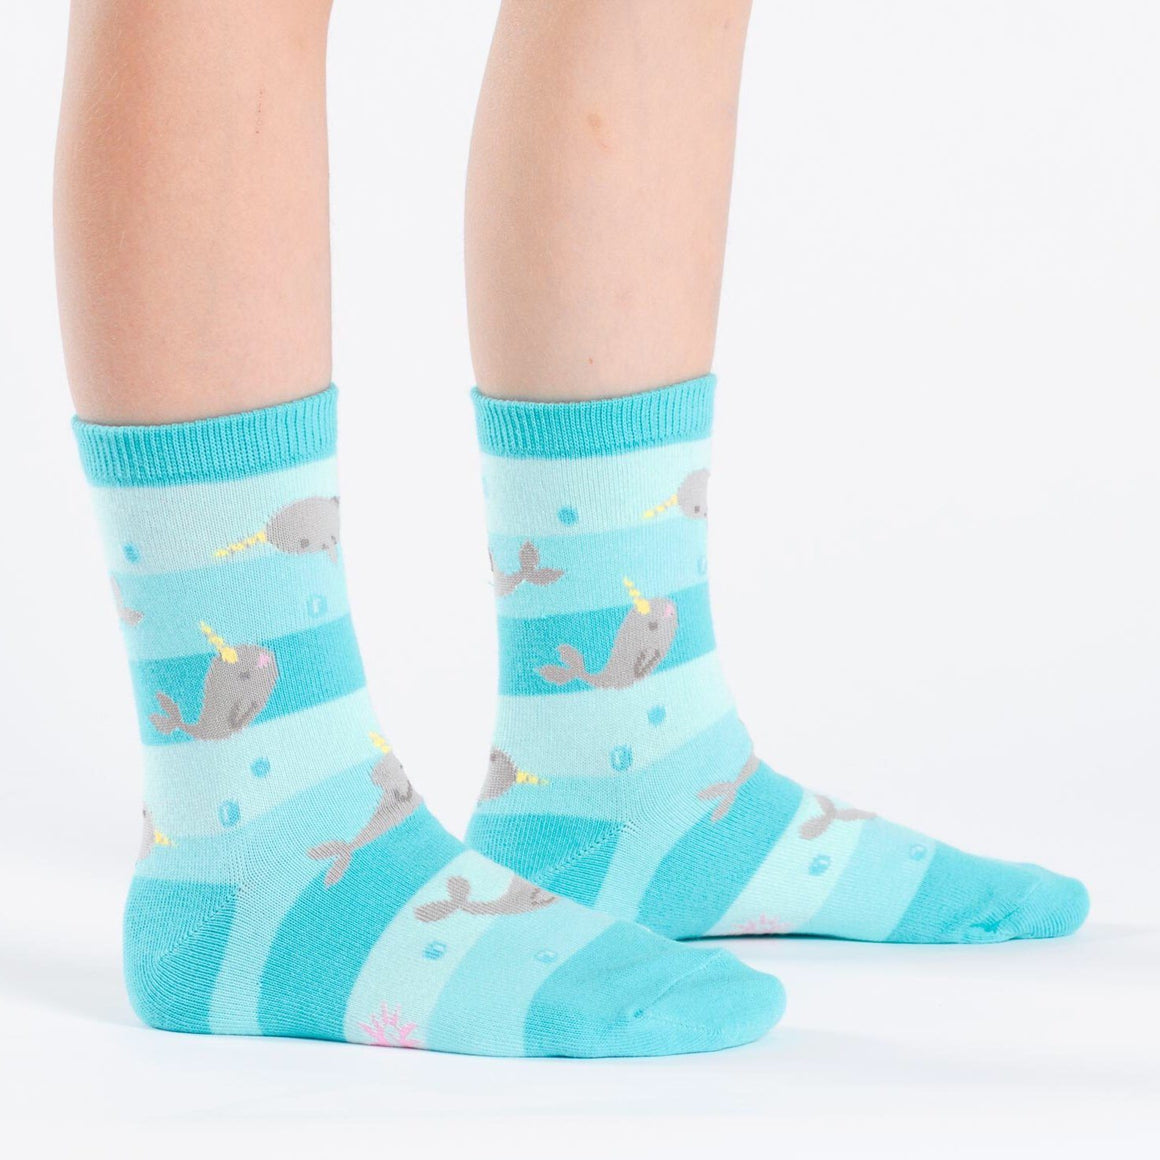 SOCKS - YOUTH CREW UNICORN OF THE SEA